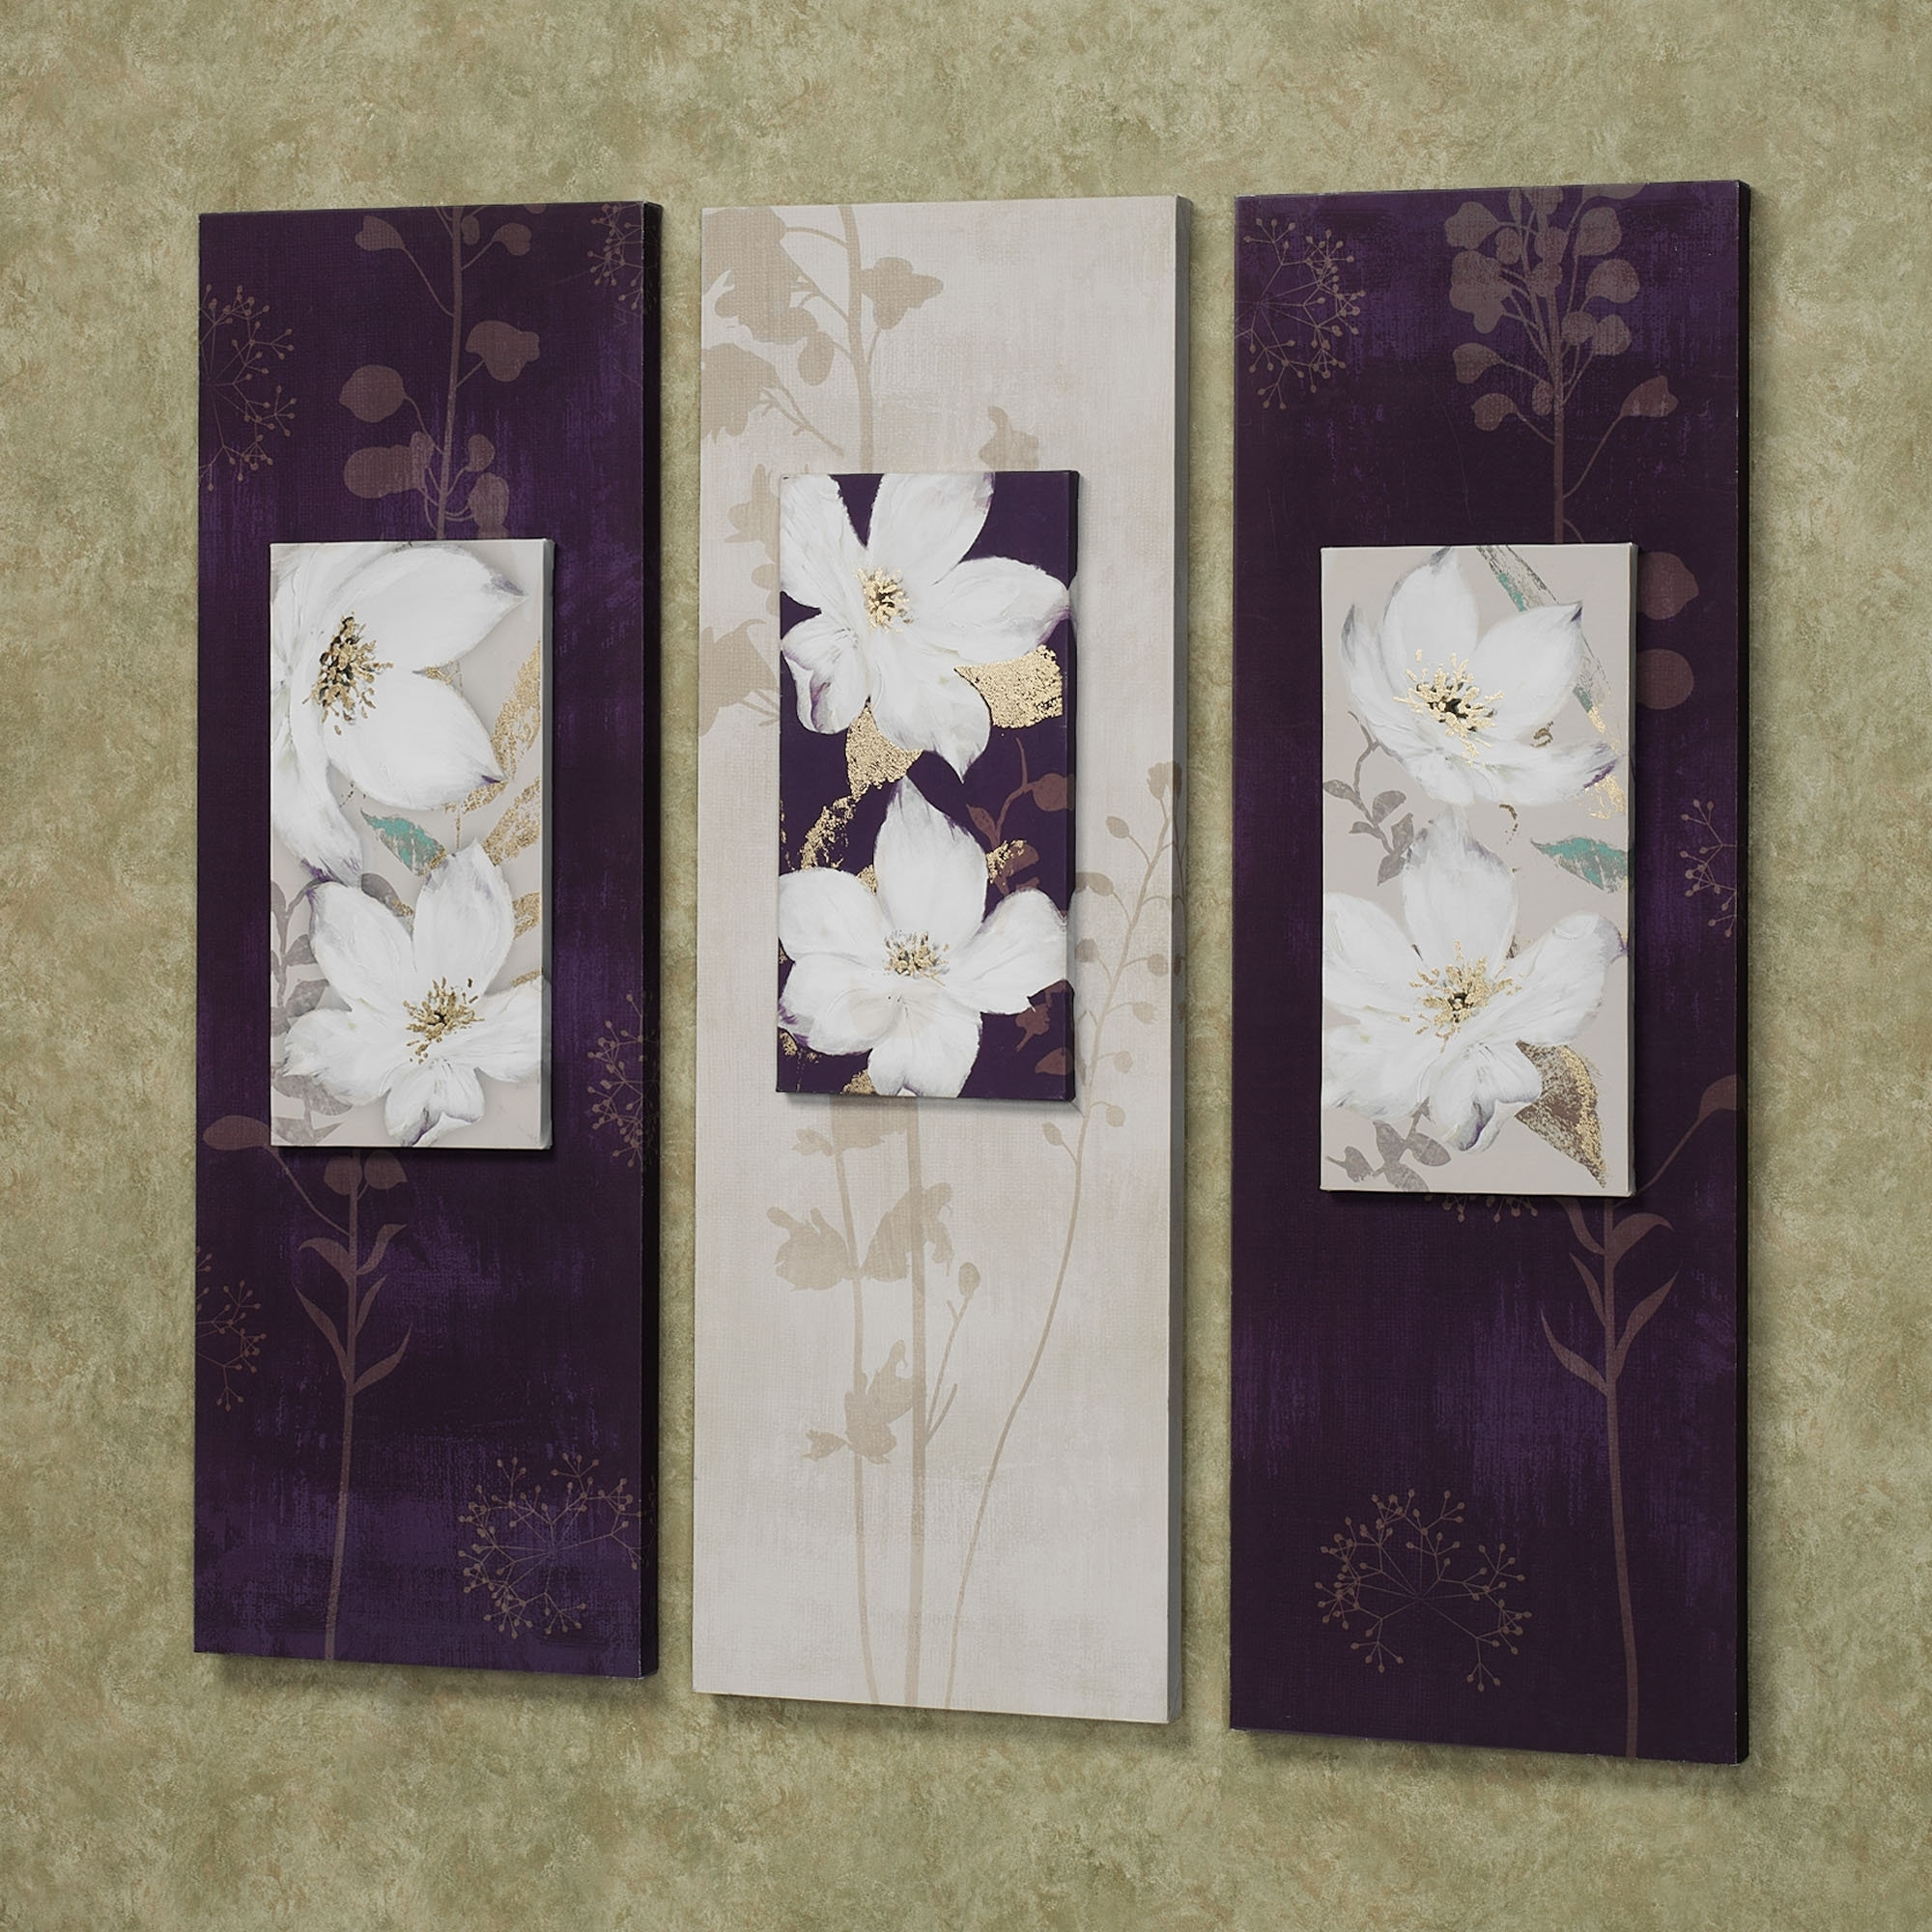 Garden Dance Floral Canvas Wall Art Set | Wall Art Sets, Canvases Within Most Recently Released Dance Canvas Wall Art (View 12 of 15)